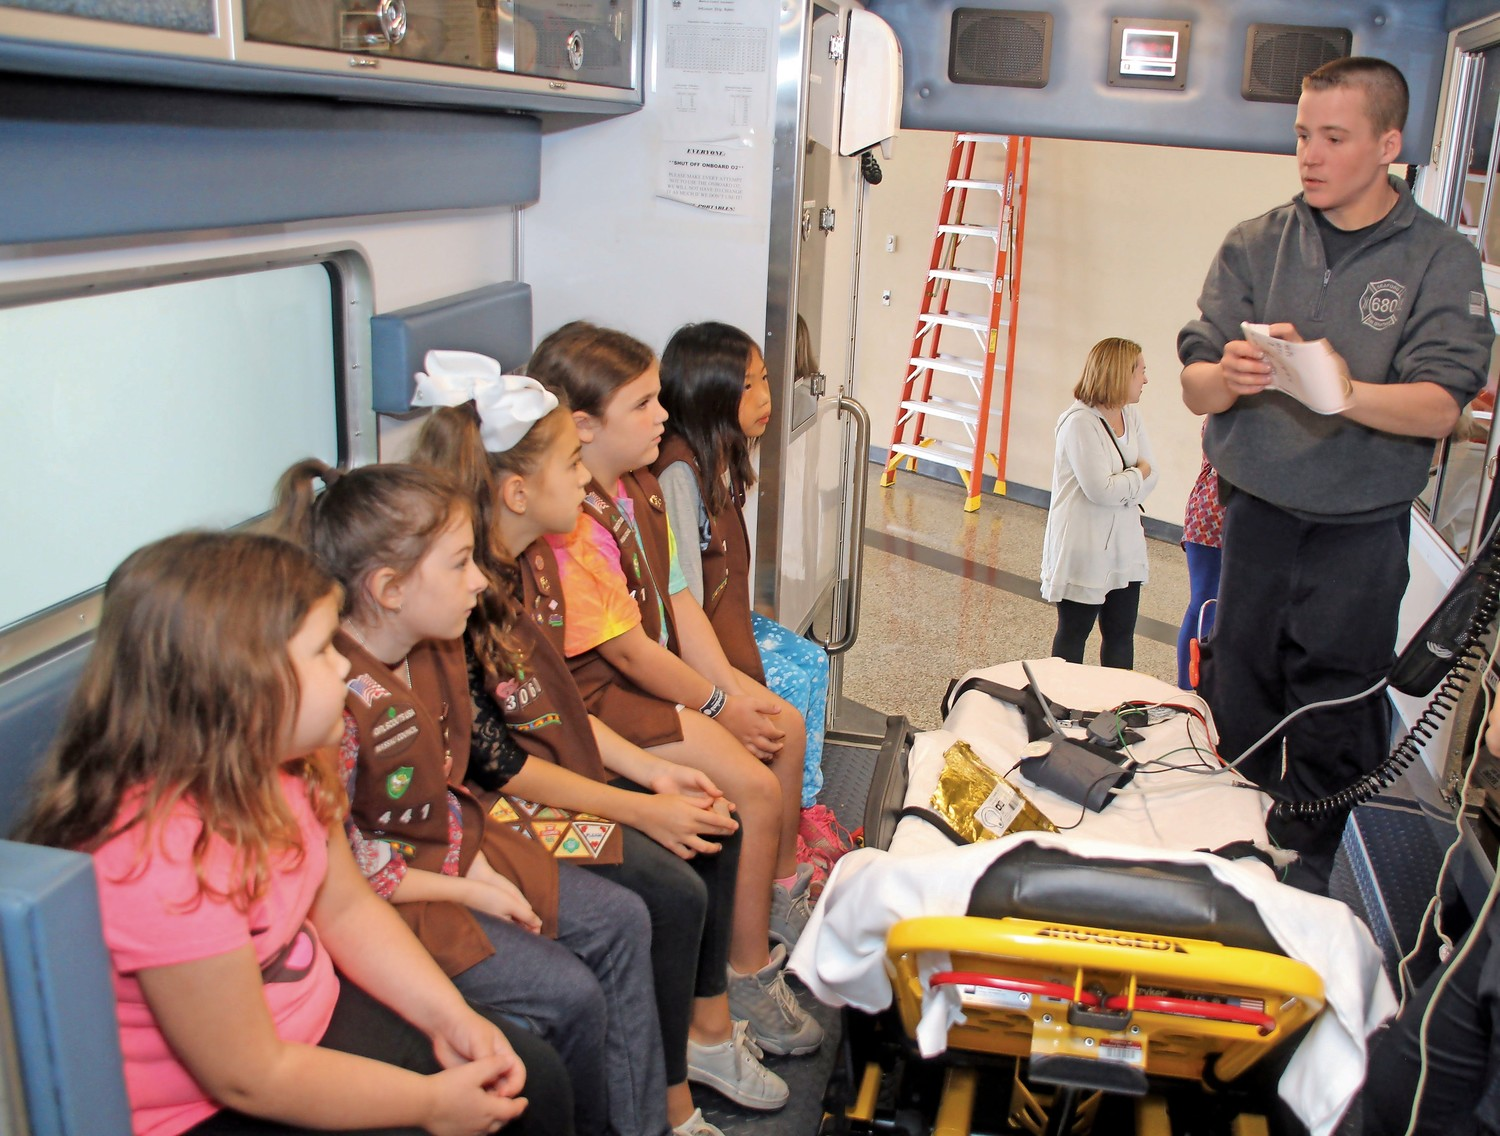 Seaford Fire Medic Tommy Reid explained some of the medical tools that are used in an emergency to Girl Scout Troops 3441 and 3060 at the department's open house. From left, Erin Comiskey, Hannah Curry, Amelia Curry, Emily Comiskey and Abigail Wind.